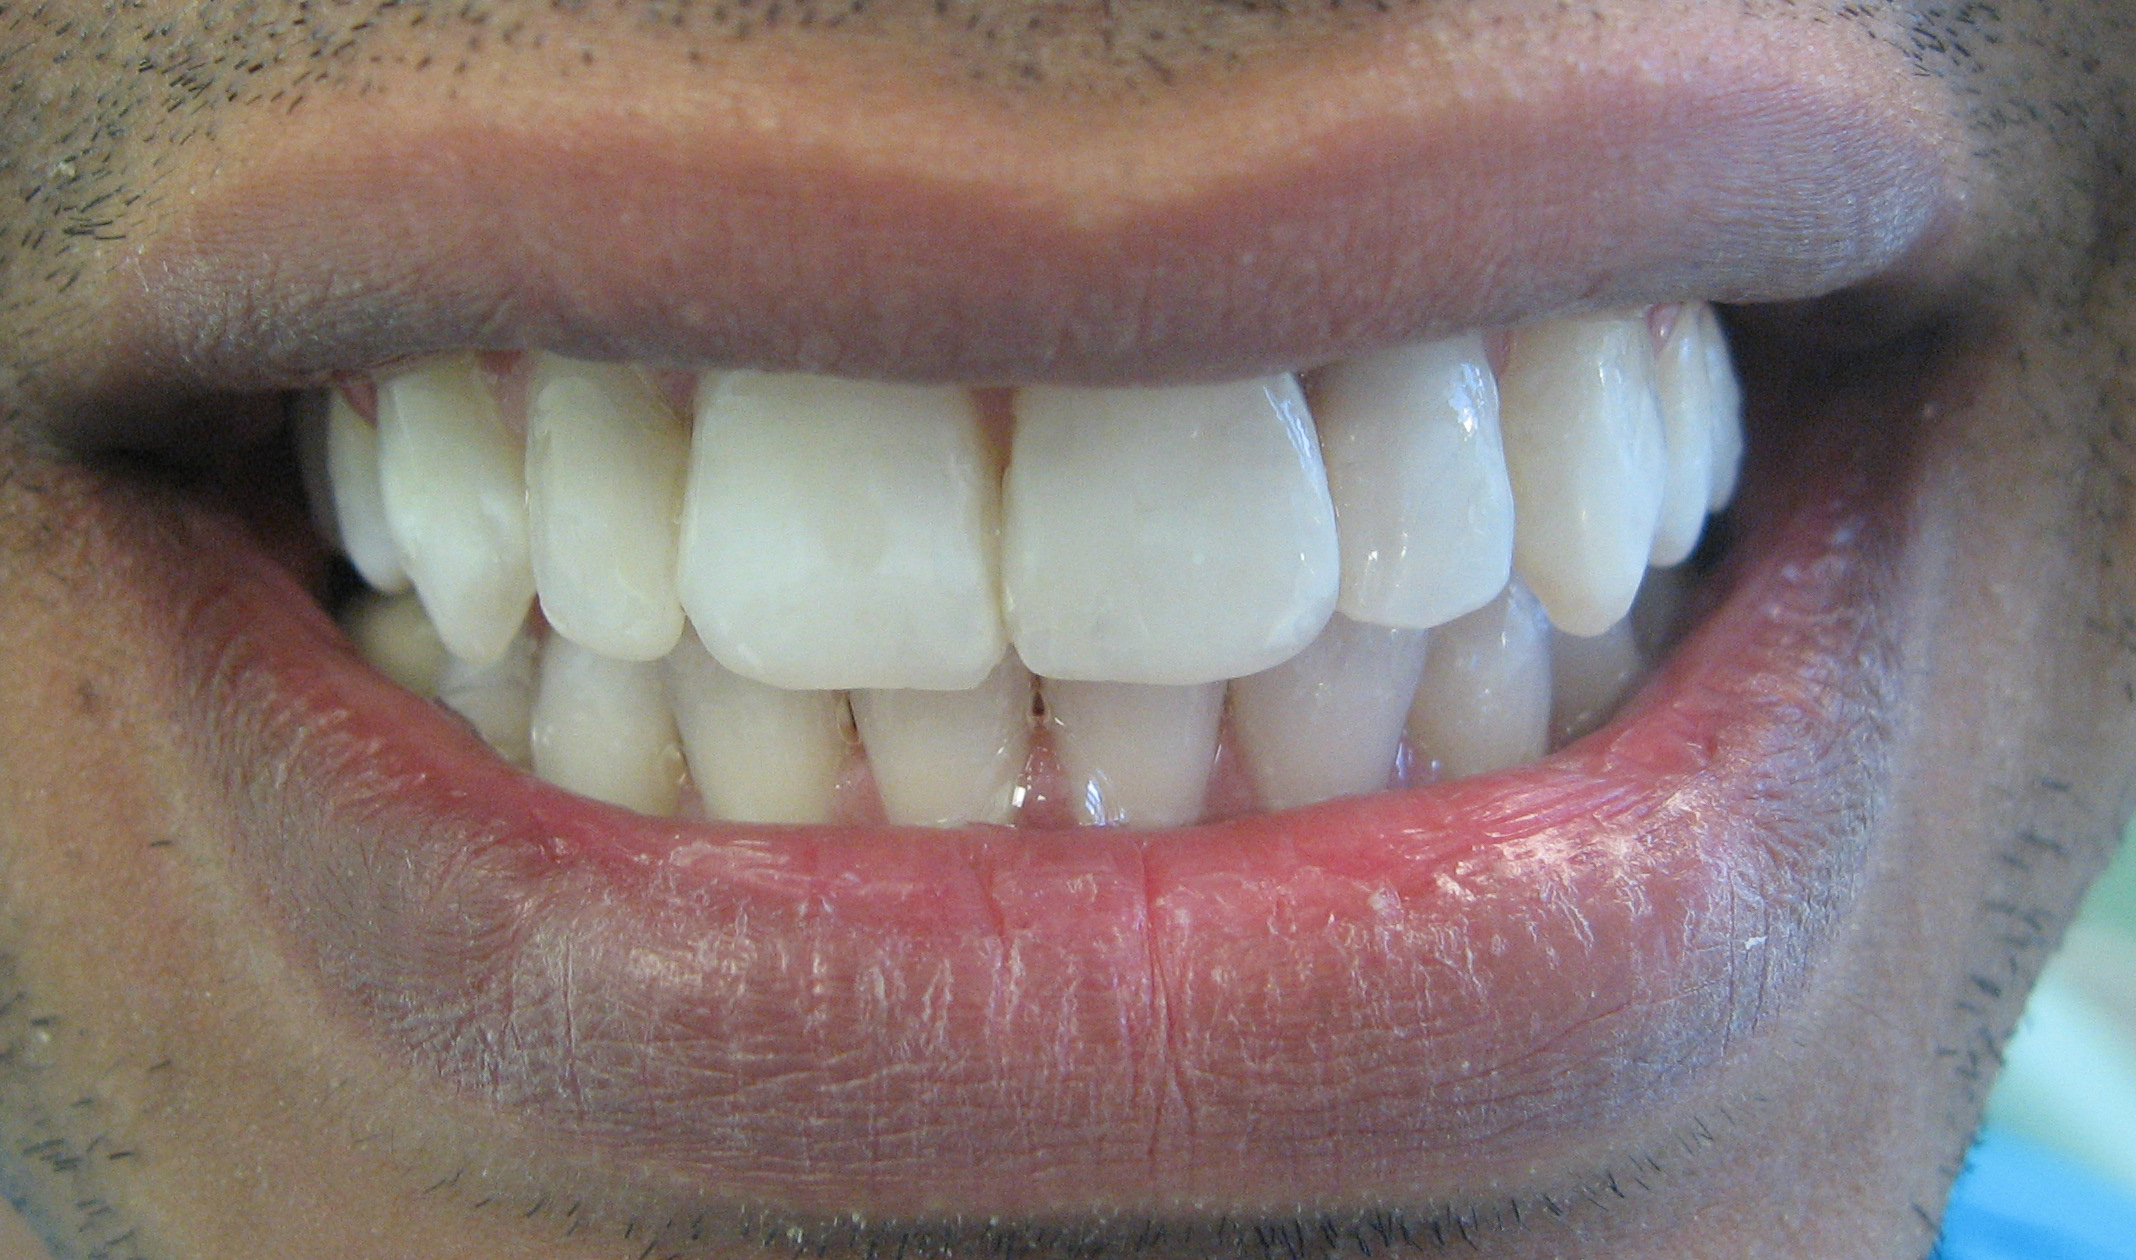 After Whitening and cosmetic bonding